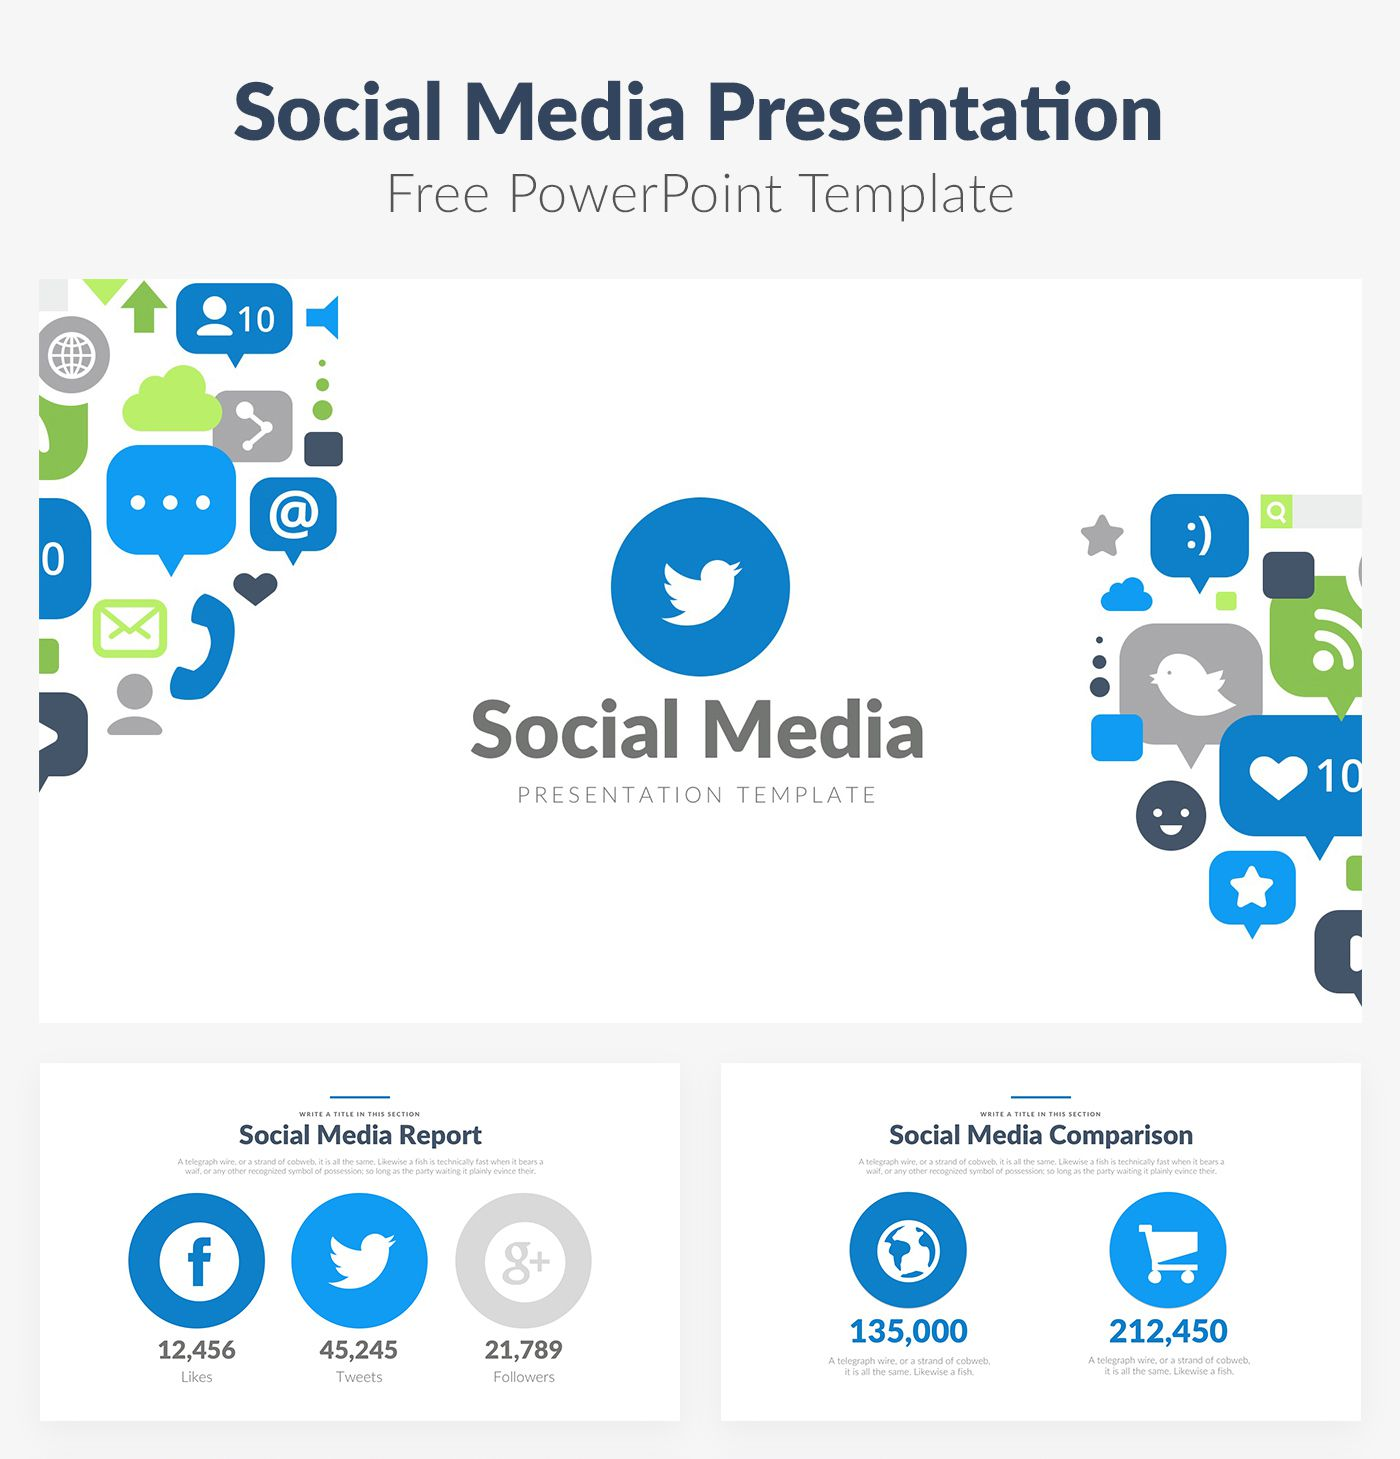 007 Top Social Media Trend 2017  Powerpoint Template Free Design -Full